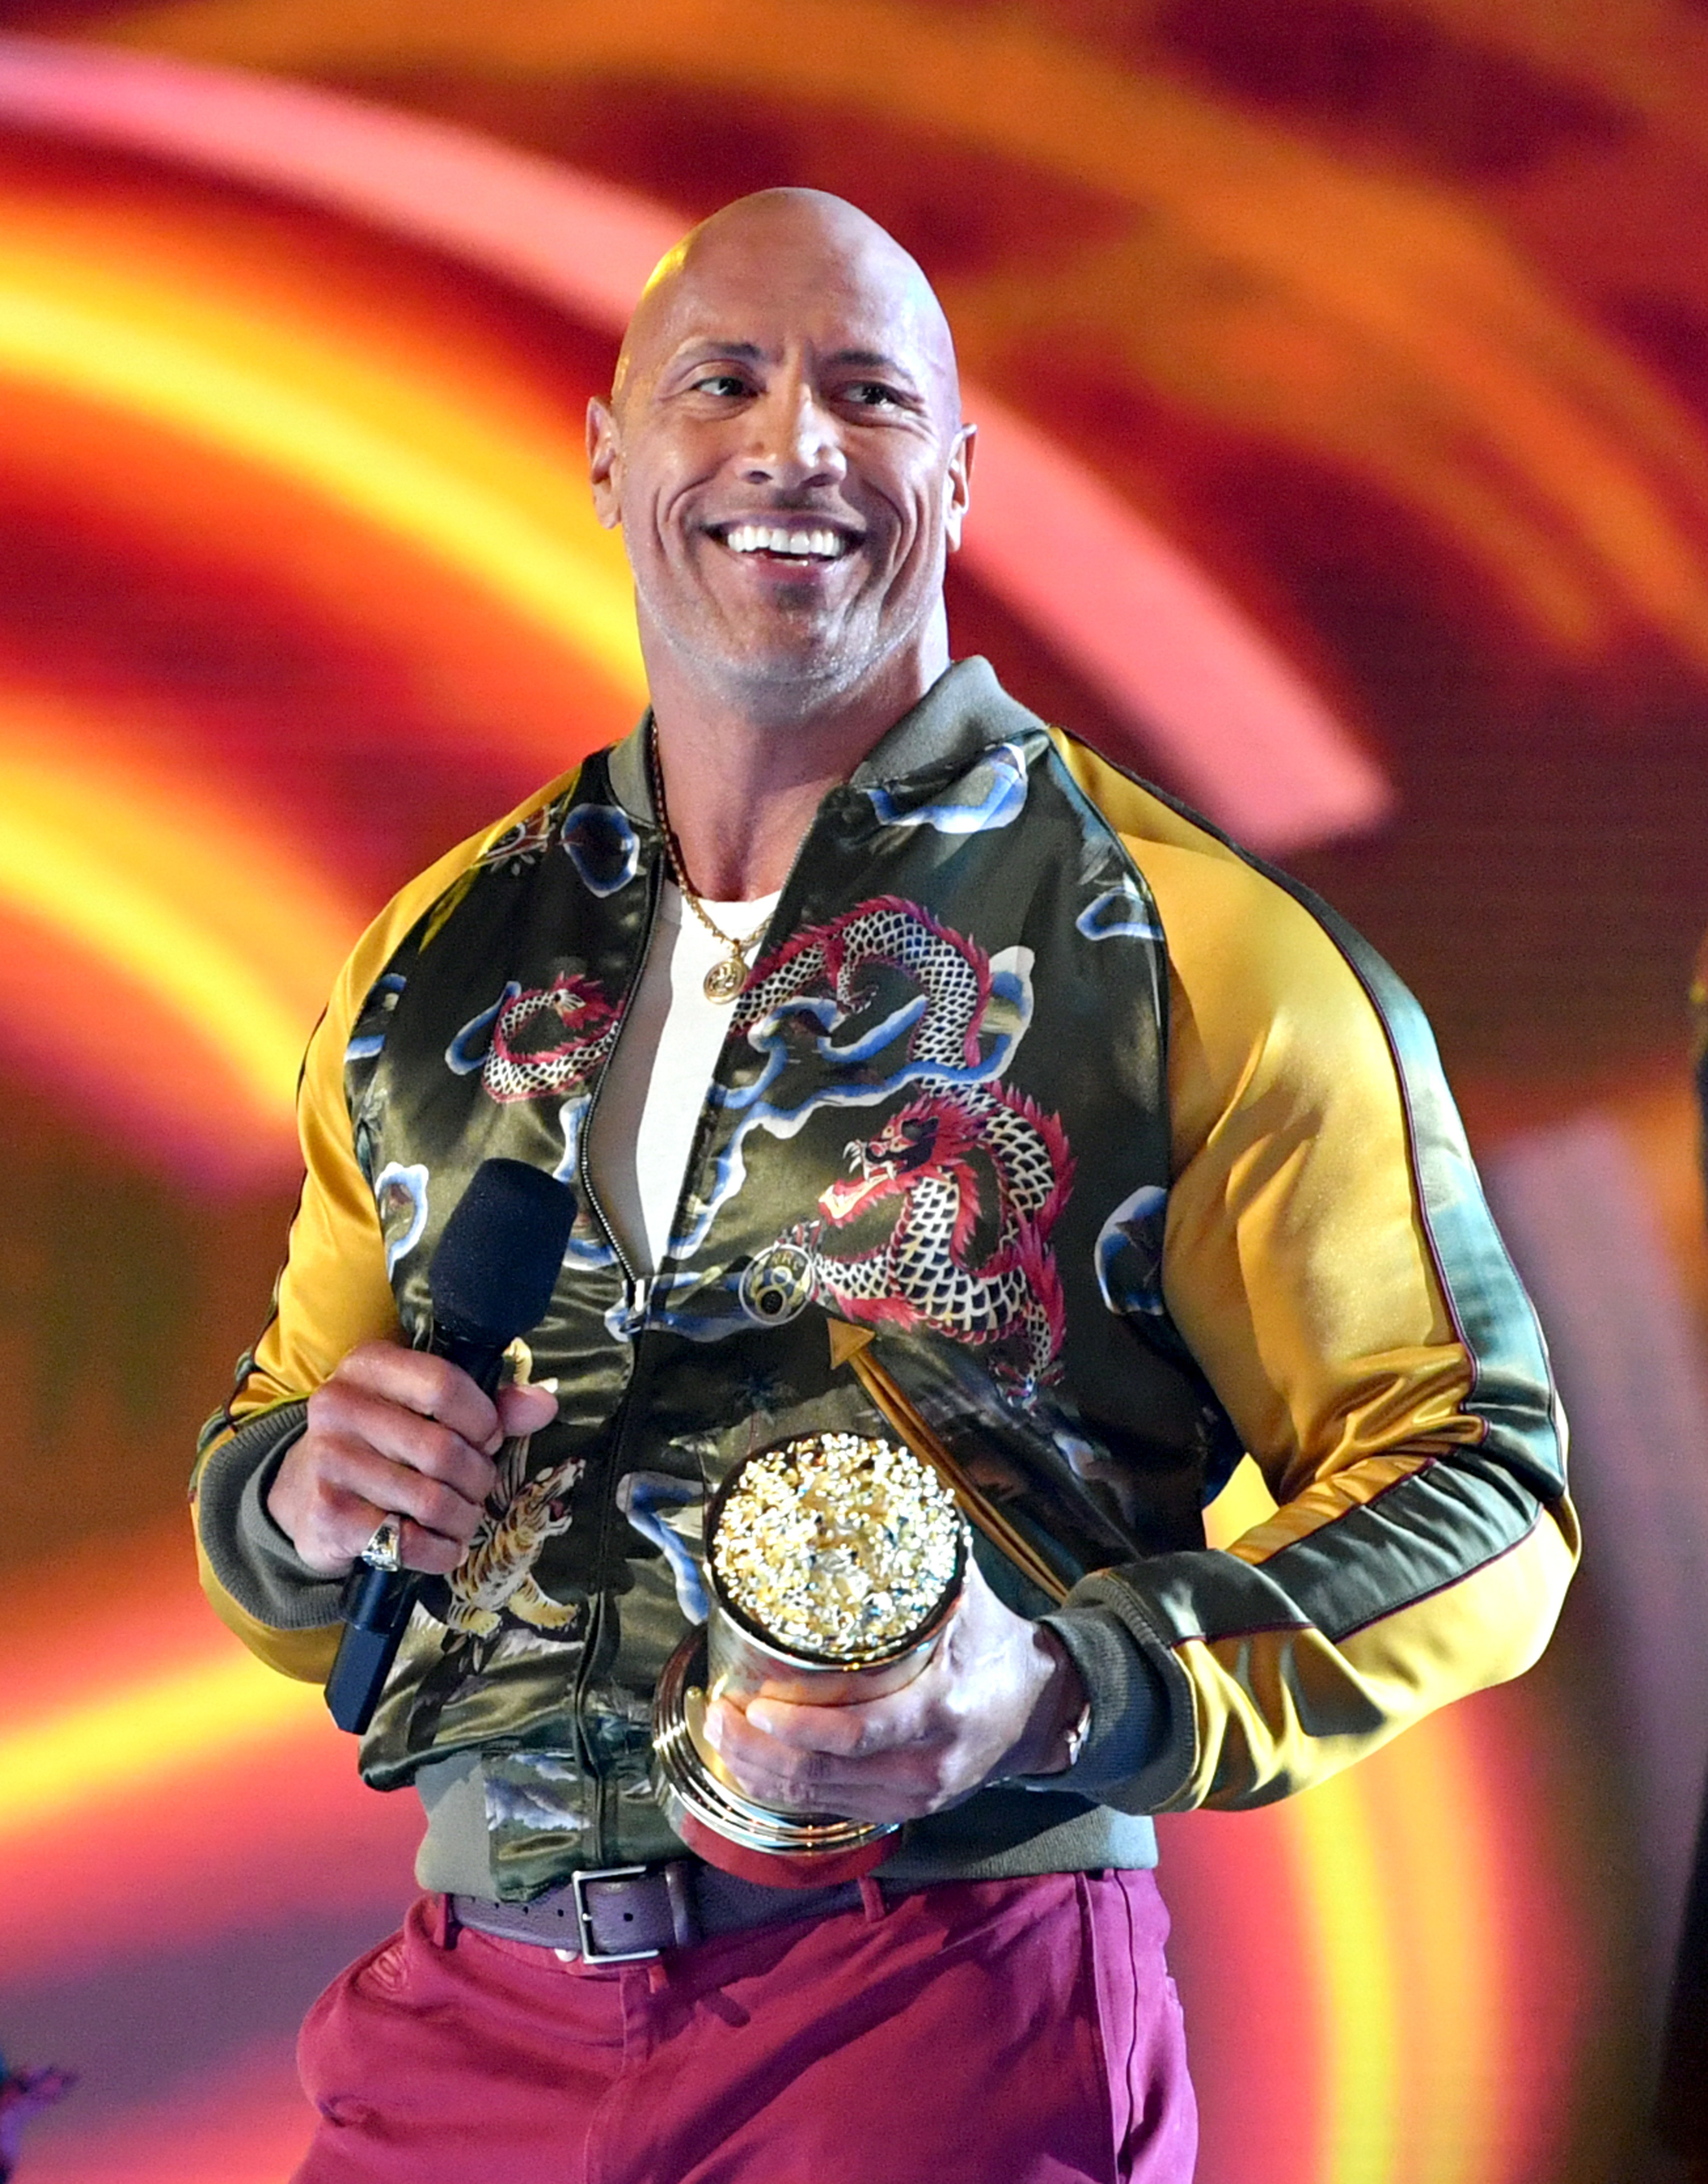 Dwayne Johnson attends the 2019 MTV Movie and TV Awards at Barker Hangar | Source: Getty Images